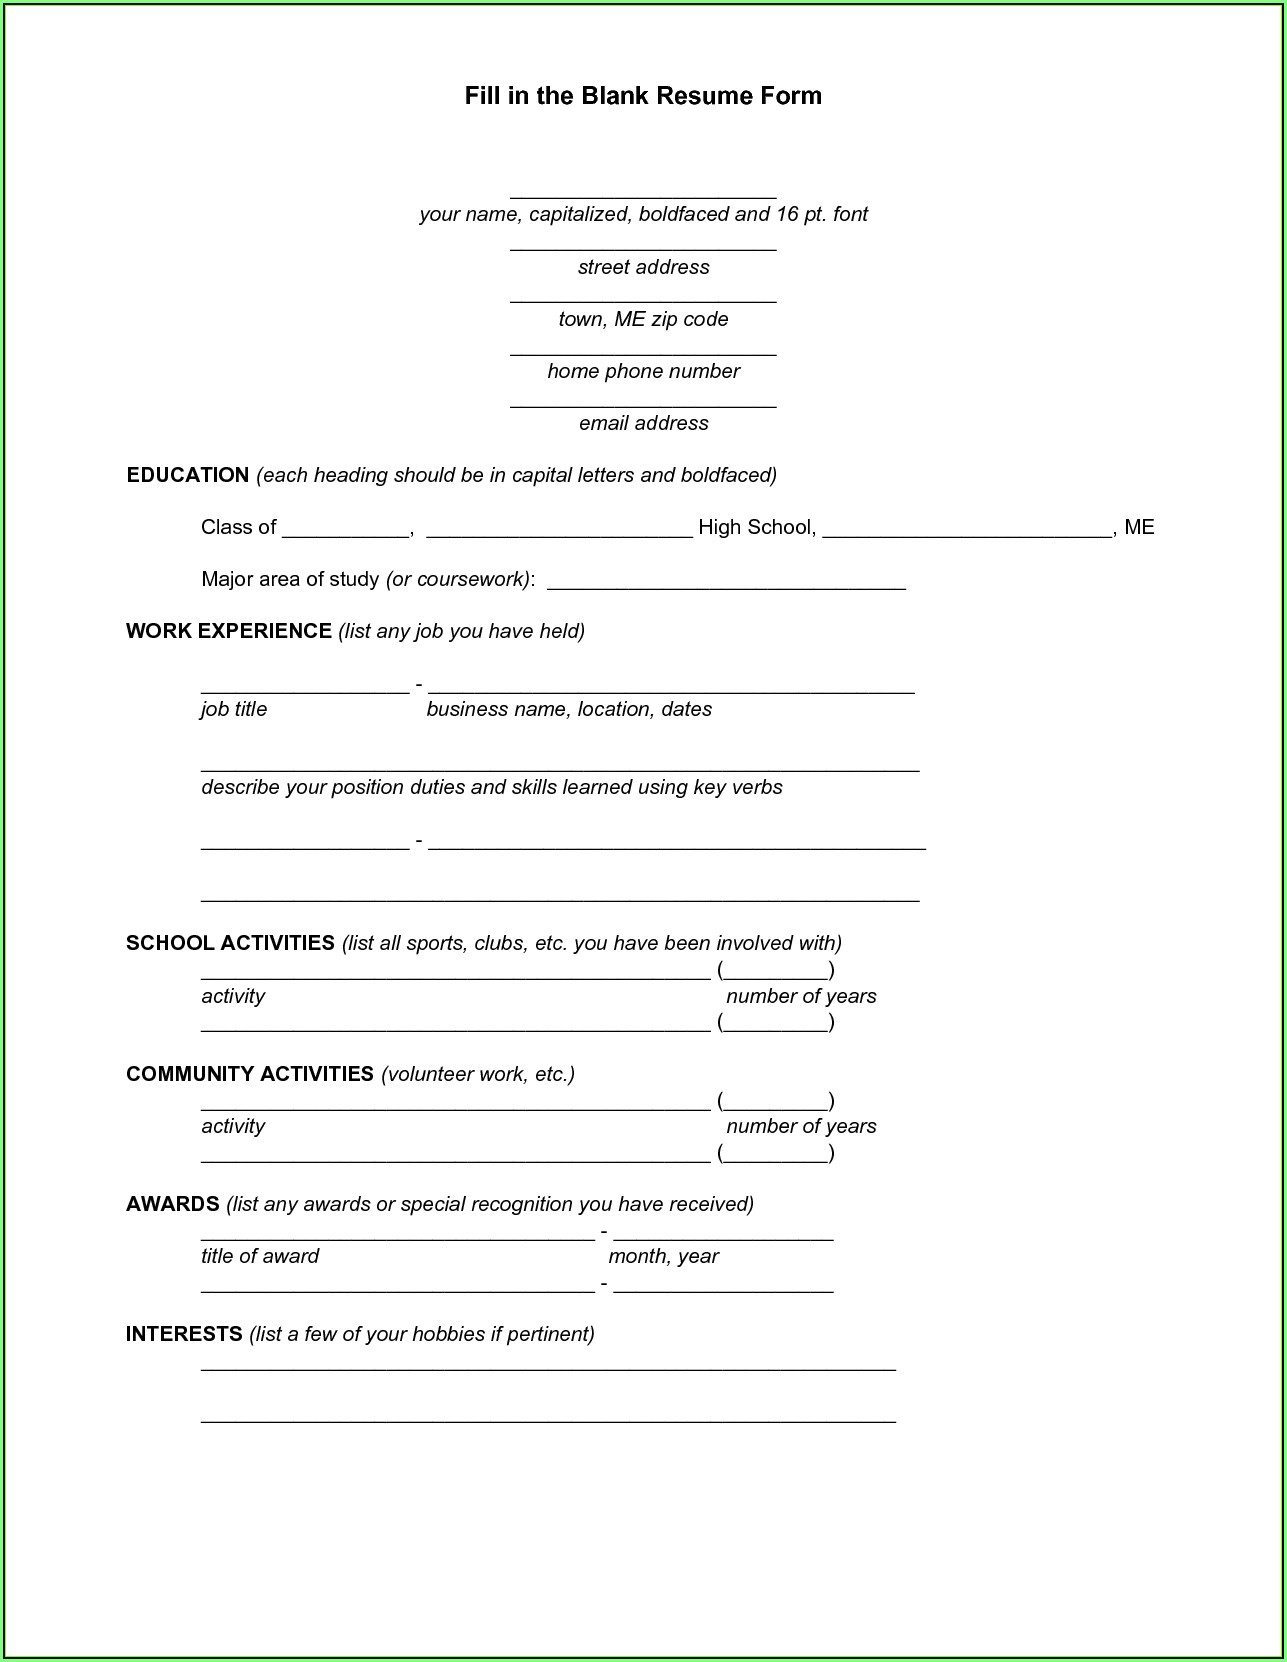 Fill In Resume Templates